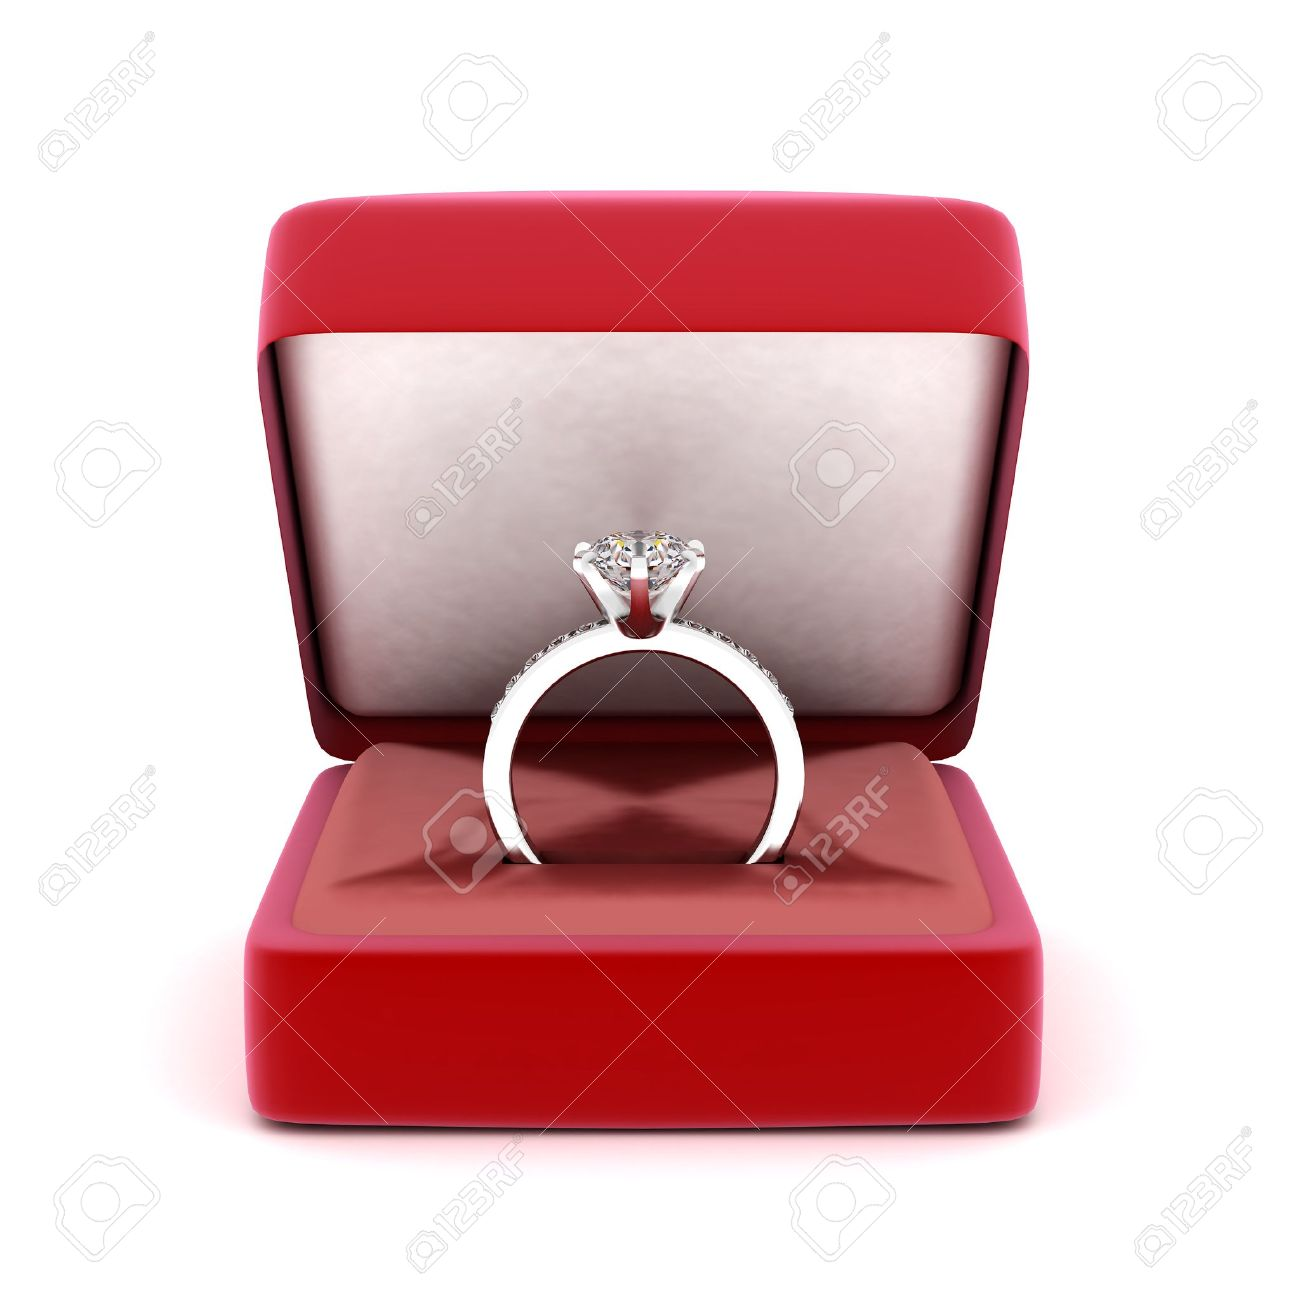 Ring Box: Image Of Wedding Rings In A Gift Box On White Background